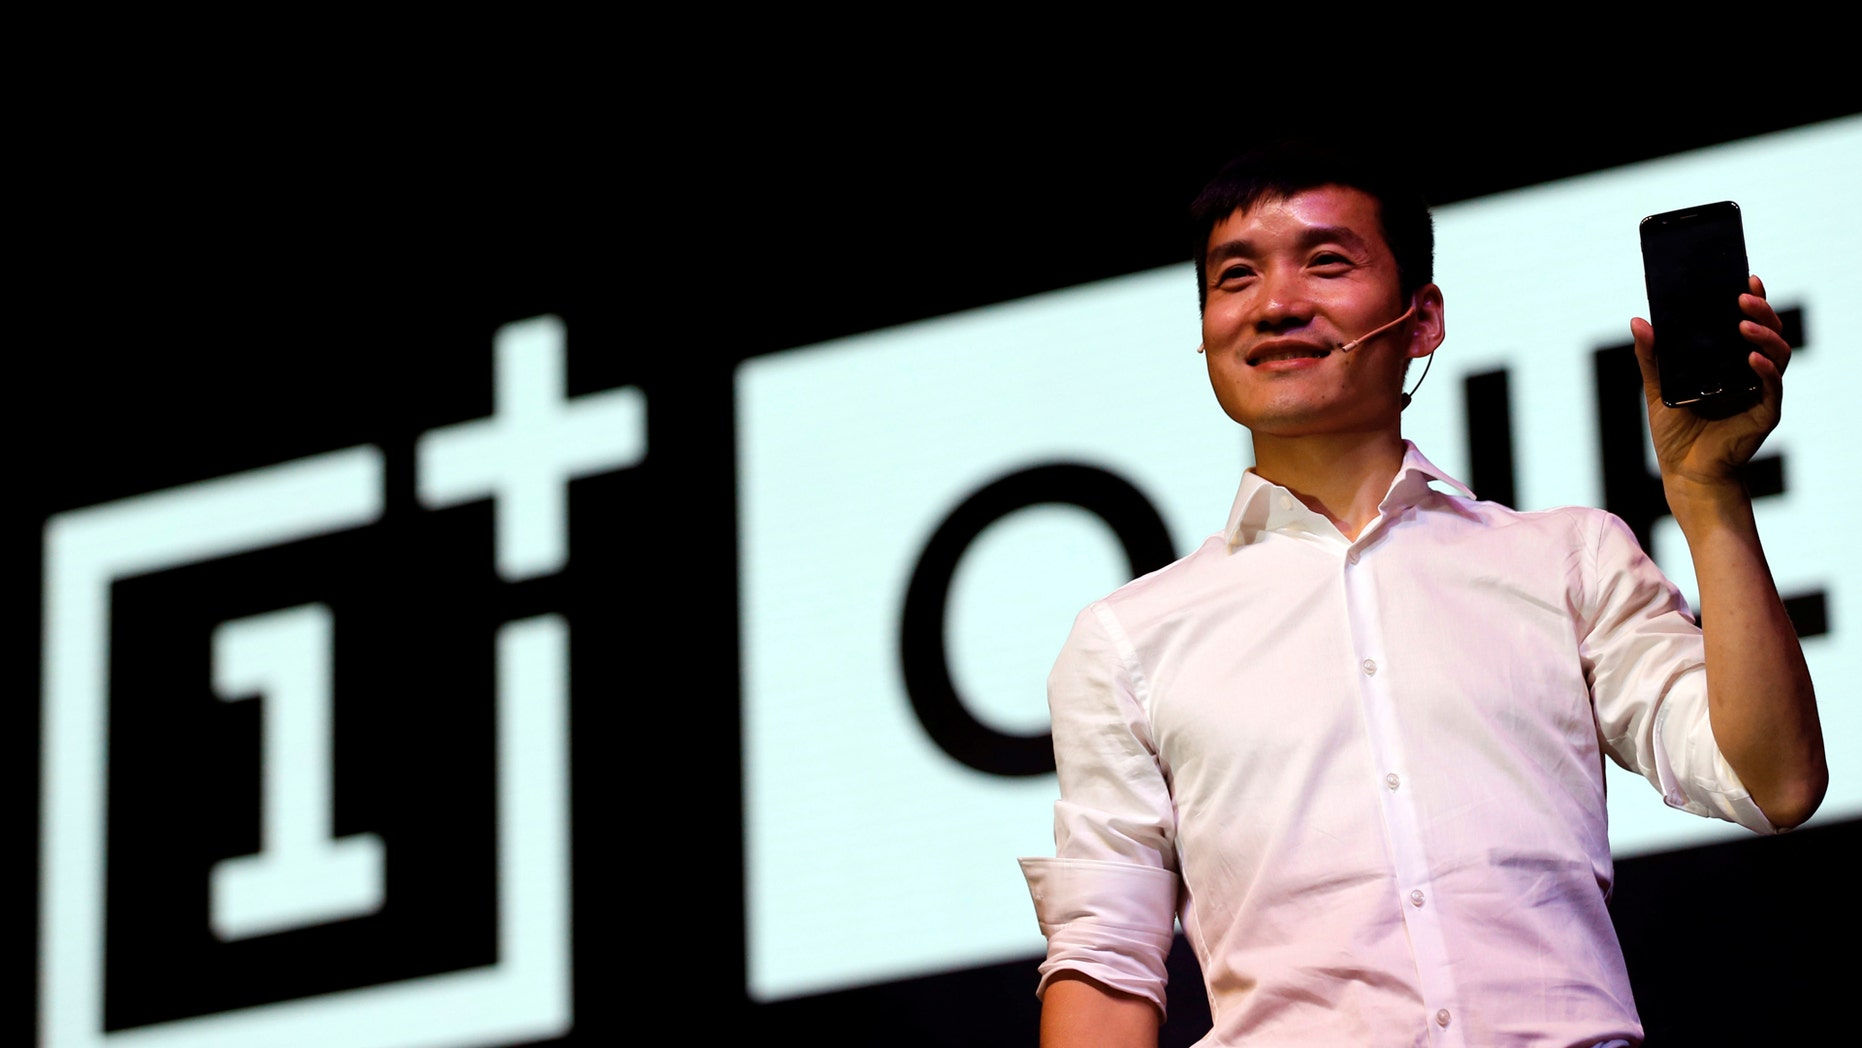 Pete Lau, founder and CEO of China's mobile company OnePlus, attends the launch of OnePlus 5 in Mumbai, India June 22, 2017. (REUTERS/Danish Siddiqui)